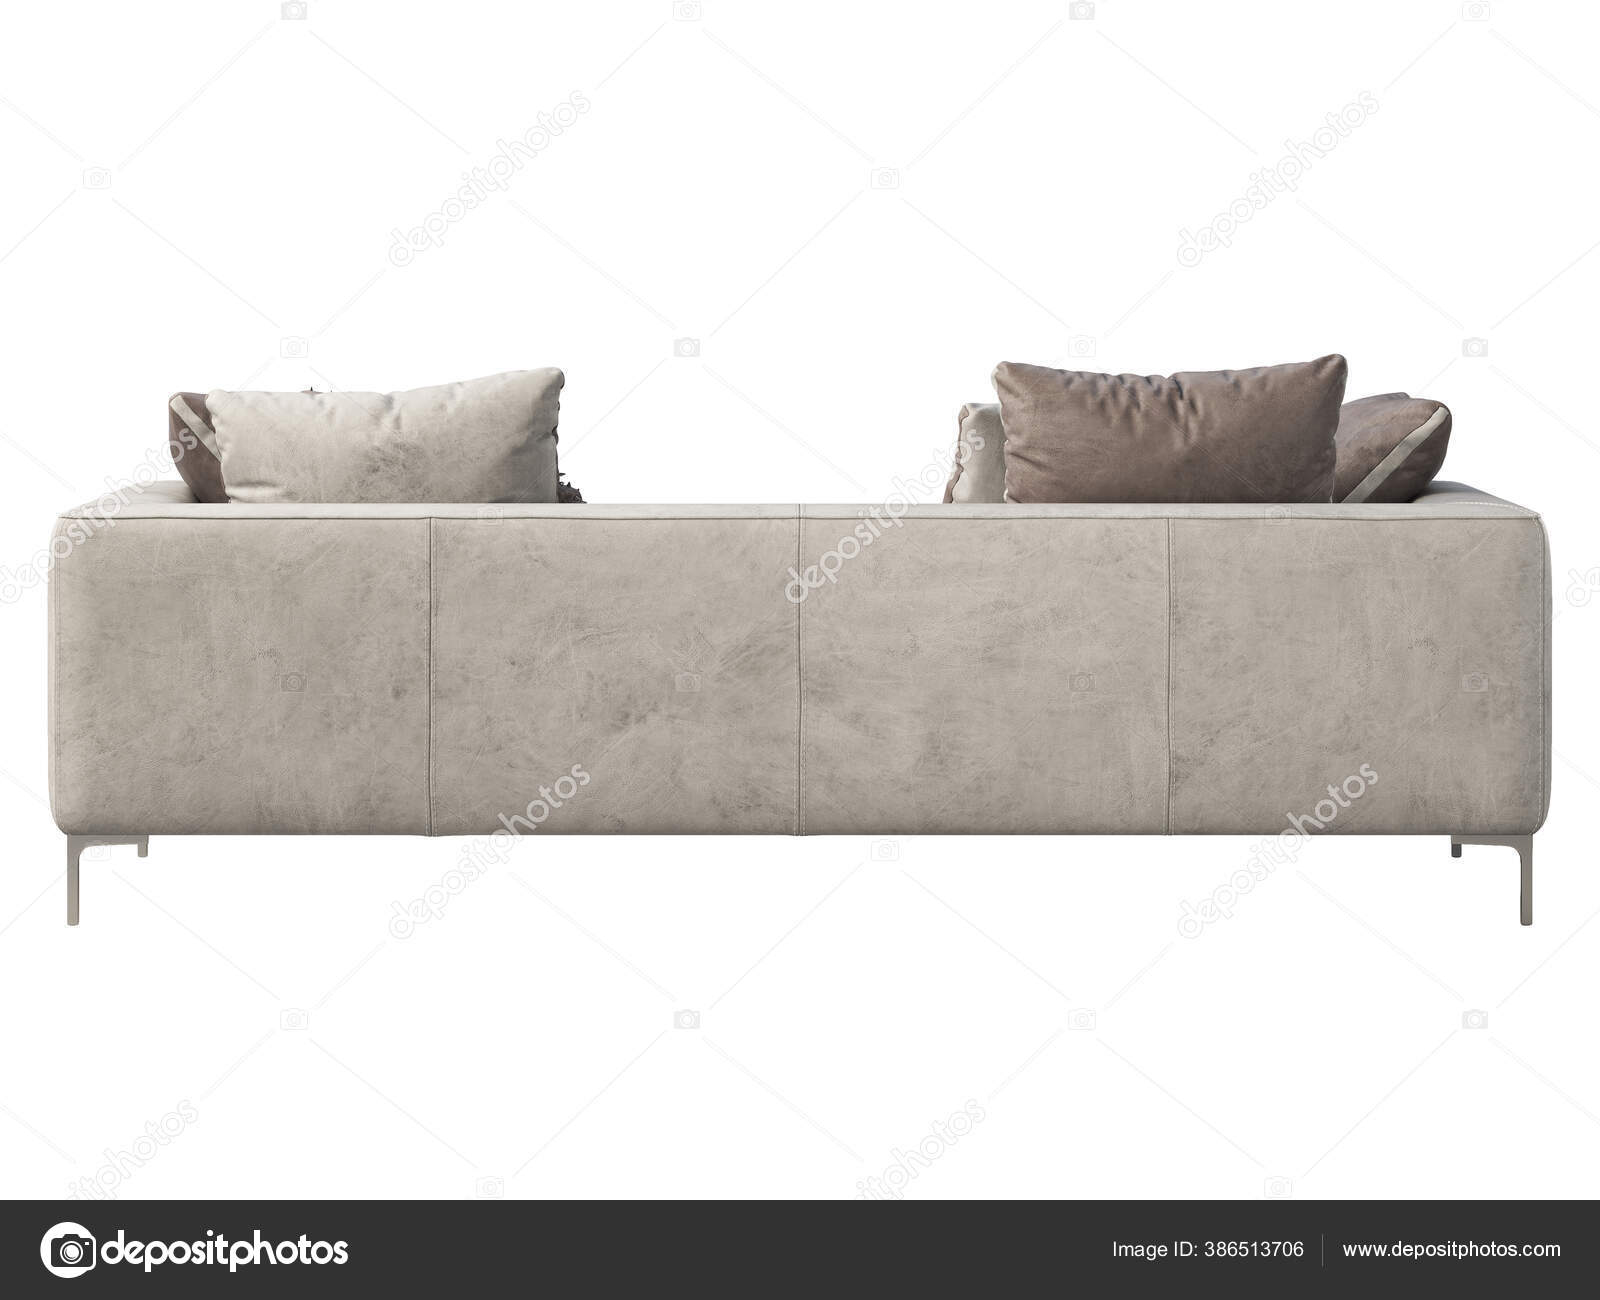 Picture of: Modern Leather Sofa Light Gray Isolated Leather Sofa Pillows Throw Stock Photo C 3dmitruk 386513706